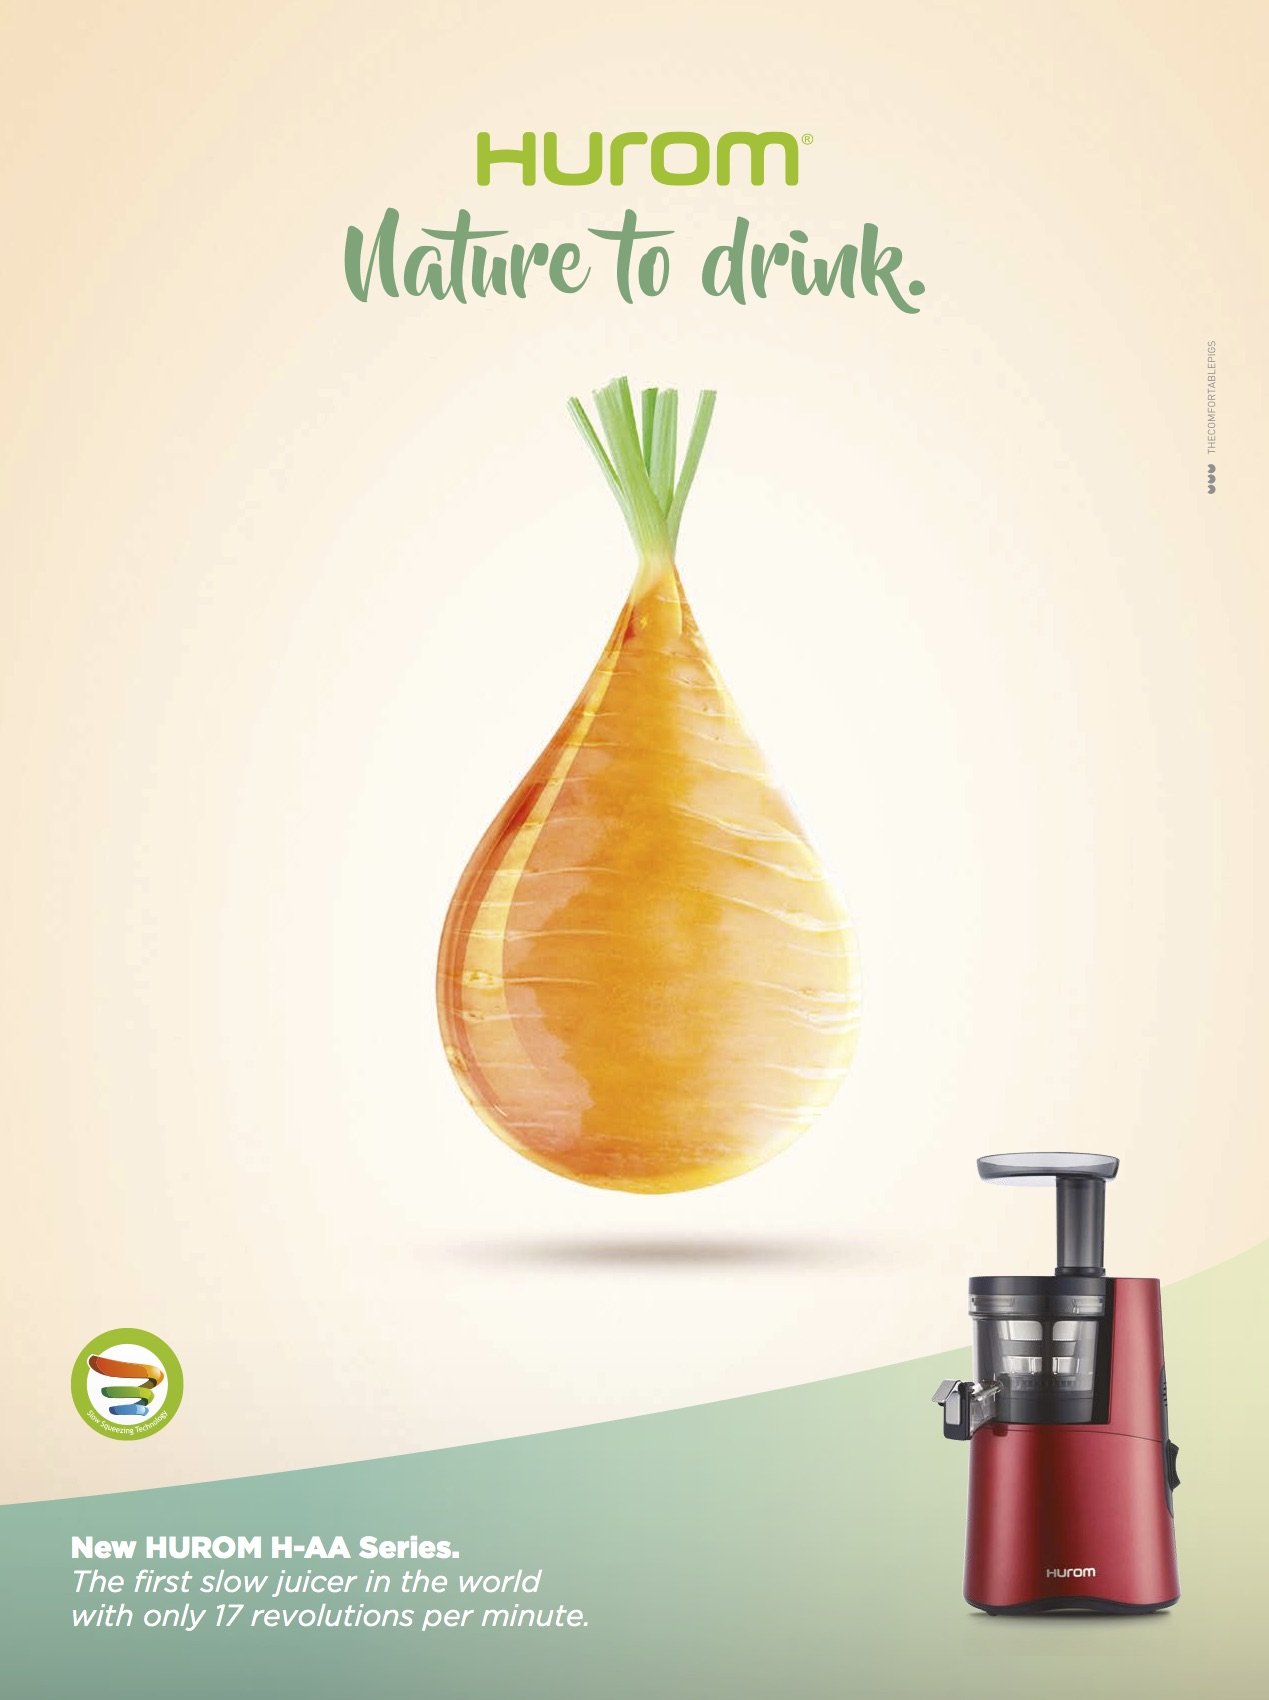 Hurom Print Advert By Thecomfortablepigs: Drops - Carrot Ads of the World